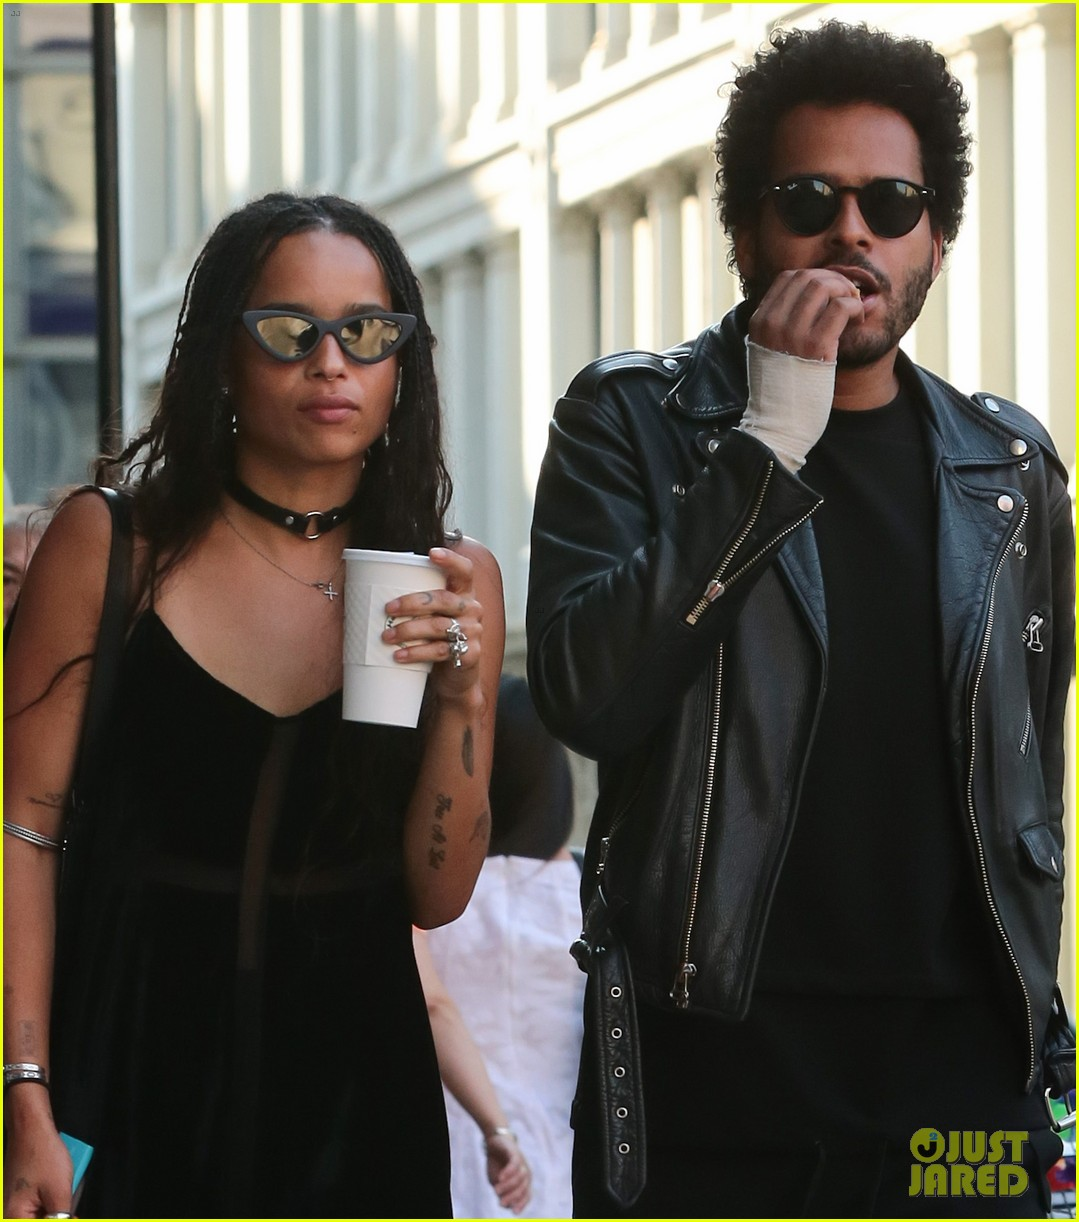 Zoe Kravitz Jennifer Lawrence Friends: Zoe Kravitz Dating 'No Ordinary Love' Collaborator Twin